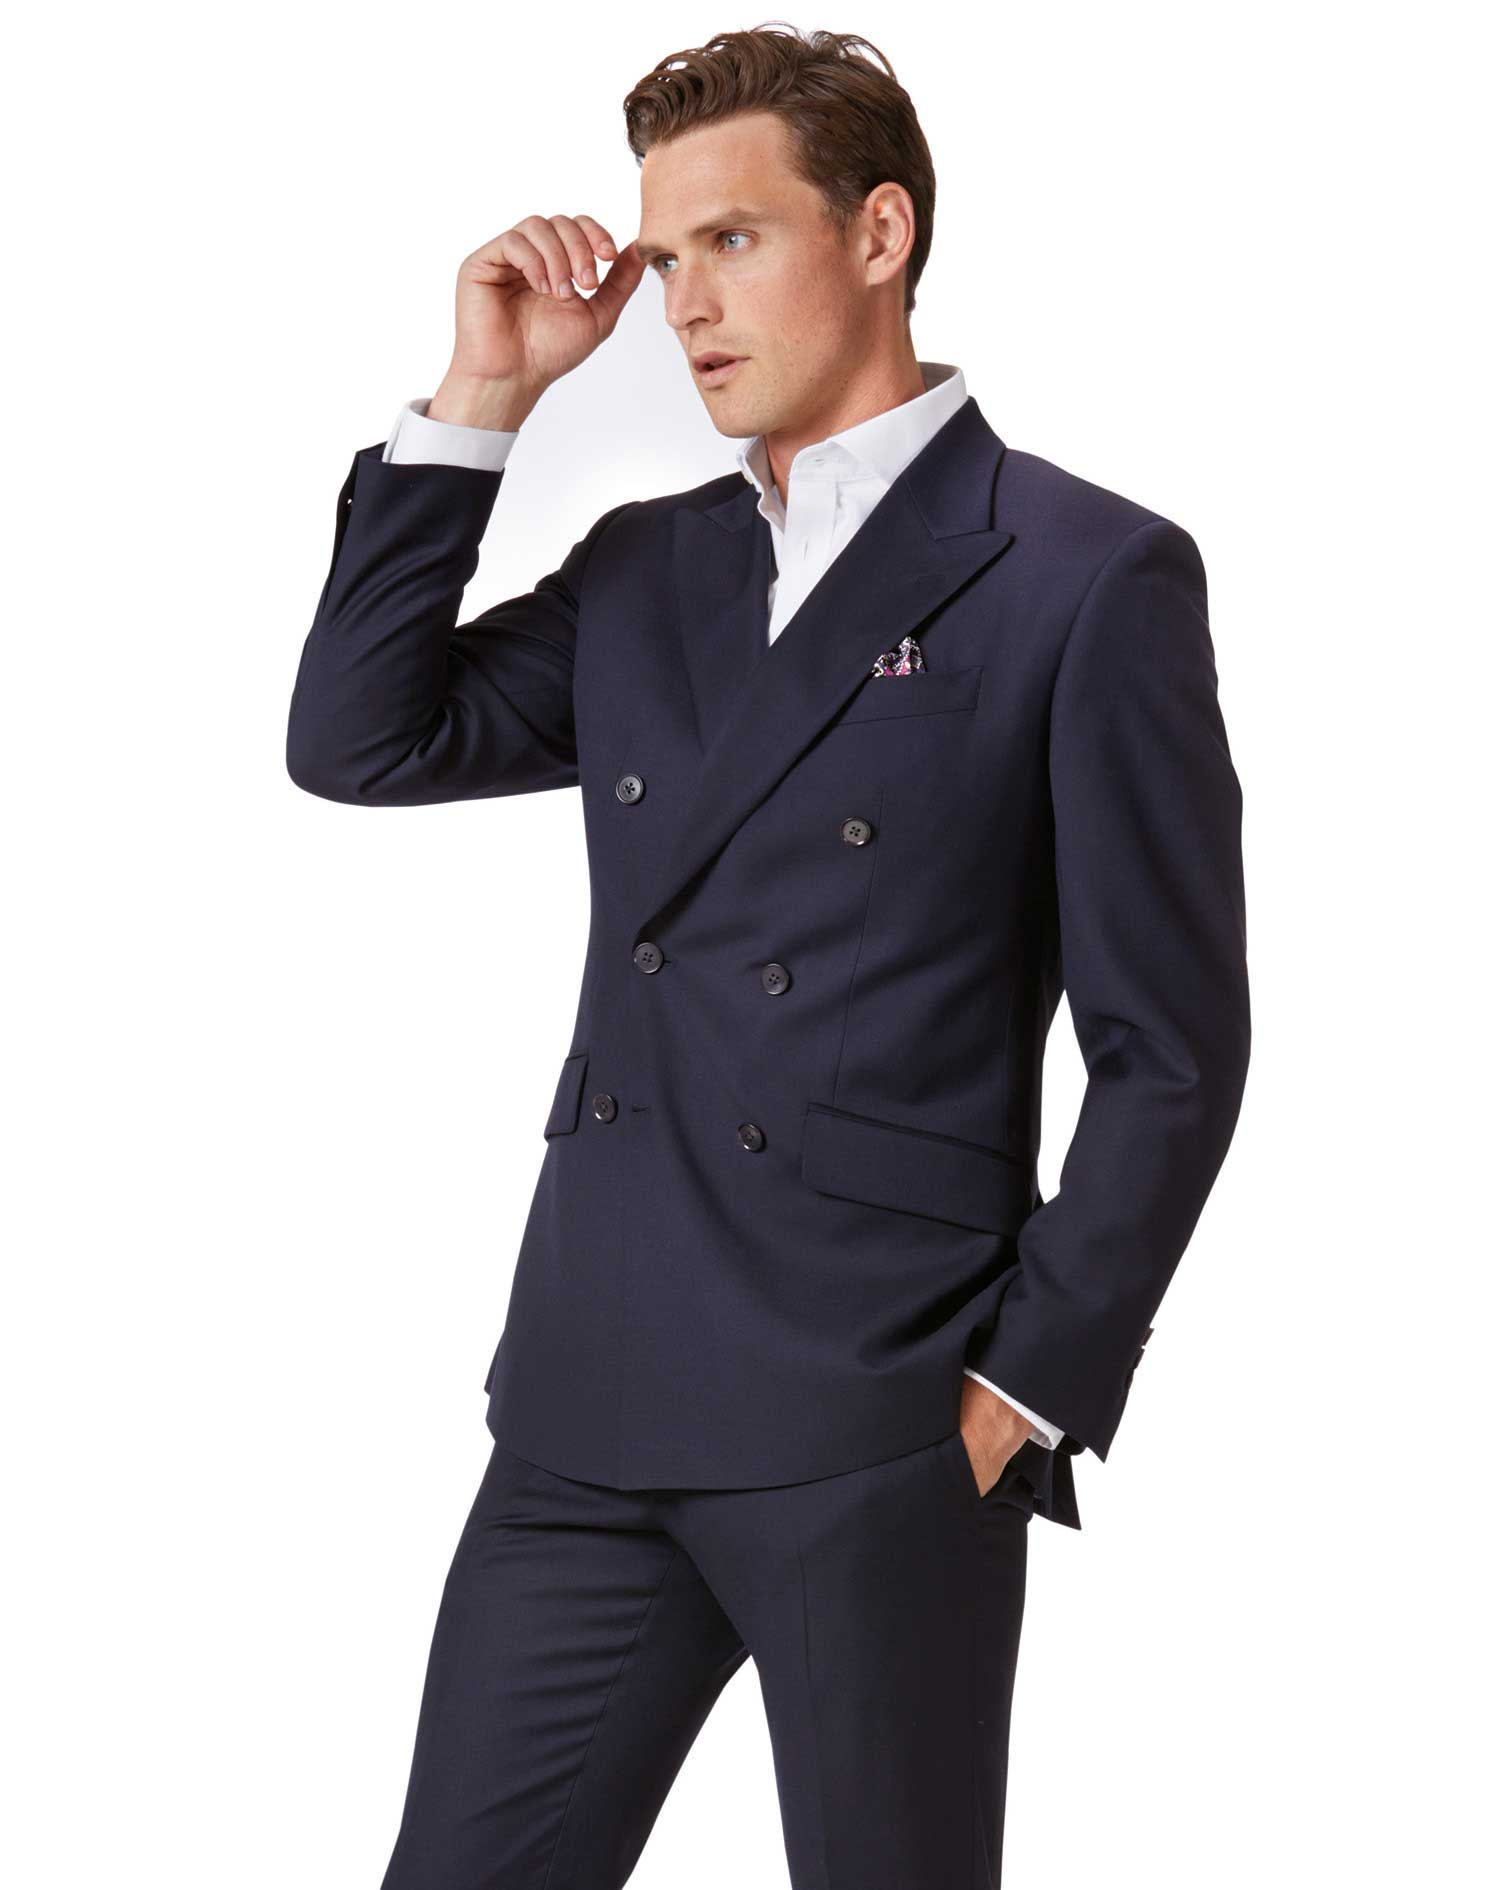 Navy Slim Fit Double Breasted Twill Business Suit Wool Jacket Size 38 Regular by Charles Tyrwhitt